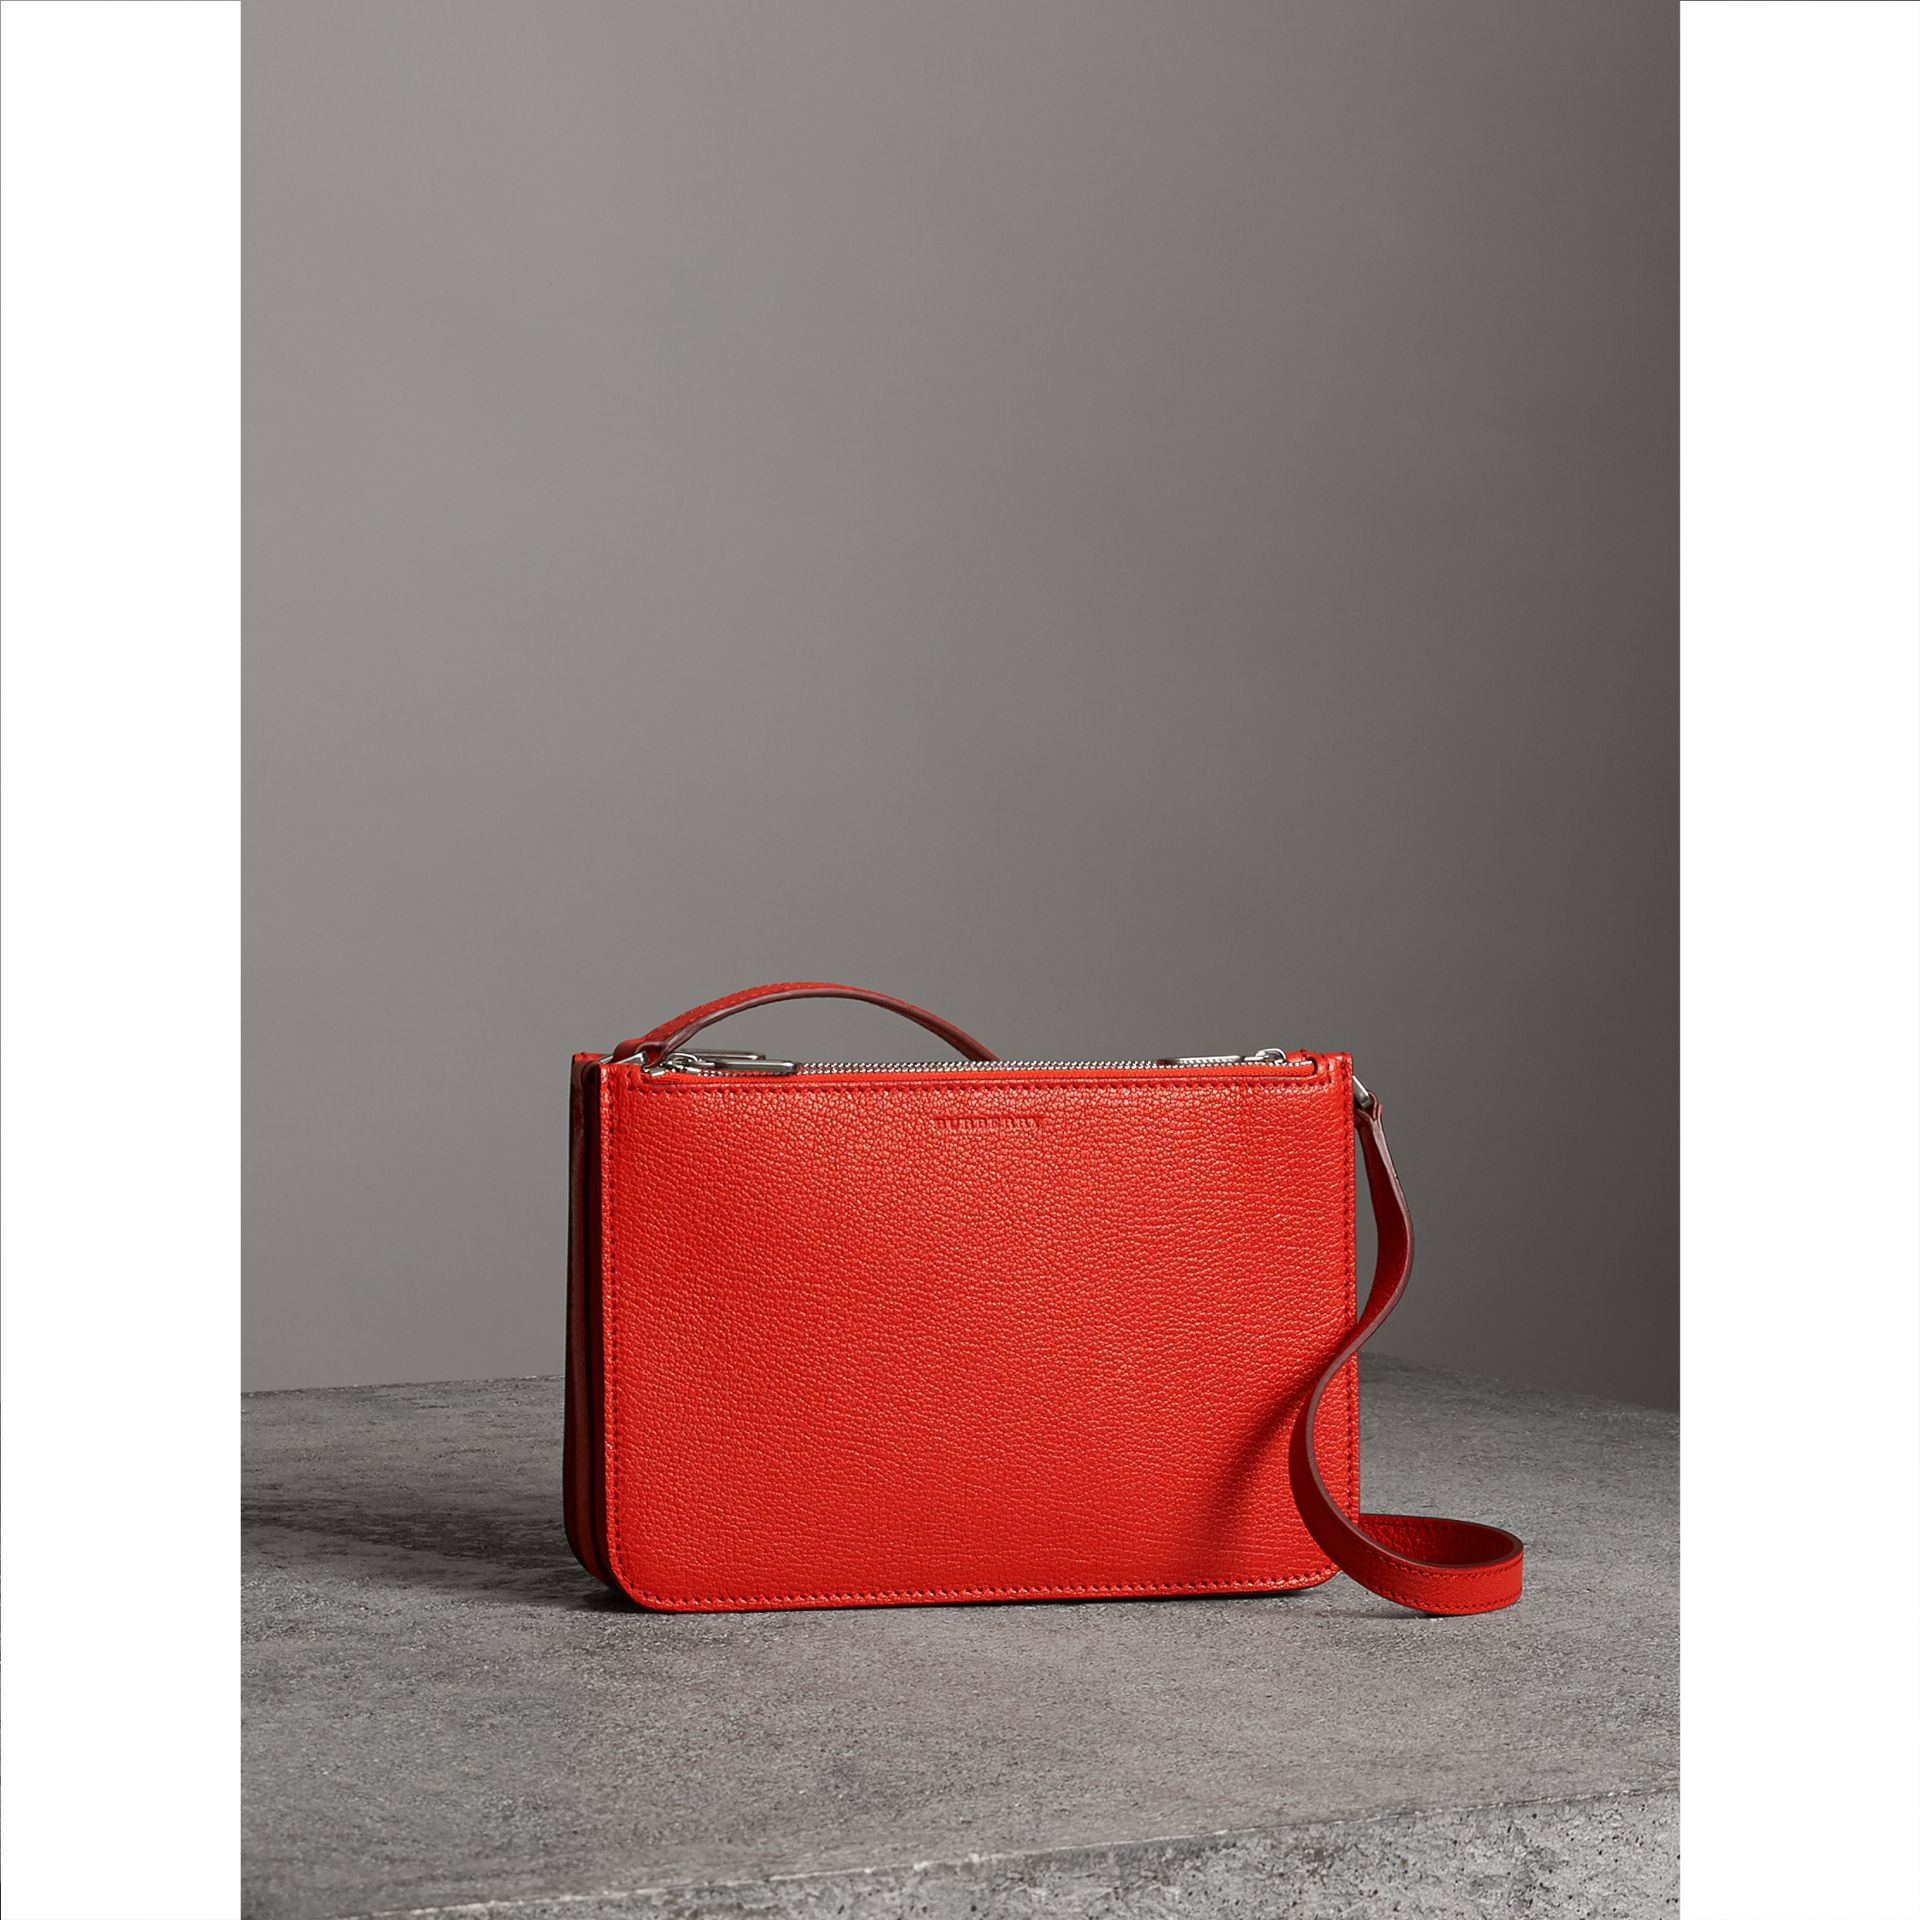 Triple Zip Grainy Leather Crossbody Bag in Bright Red - Women | Burberry - gallery image 6